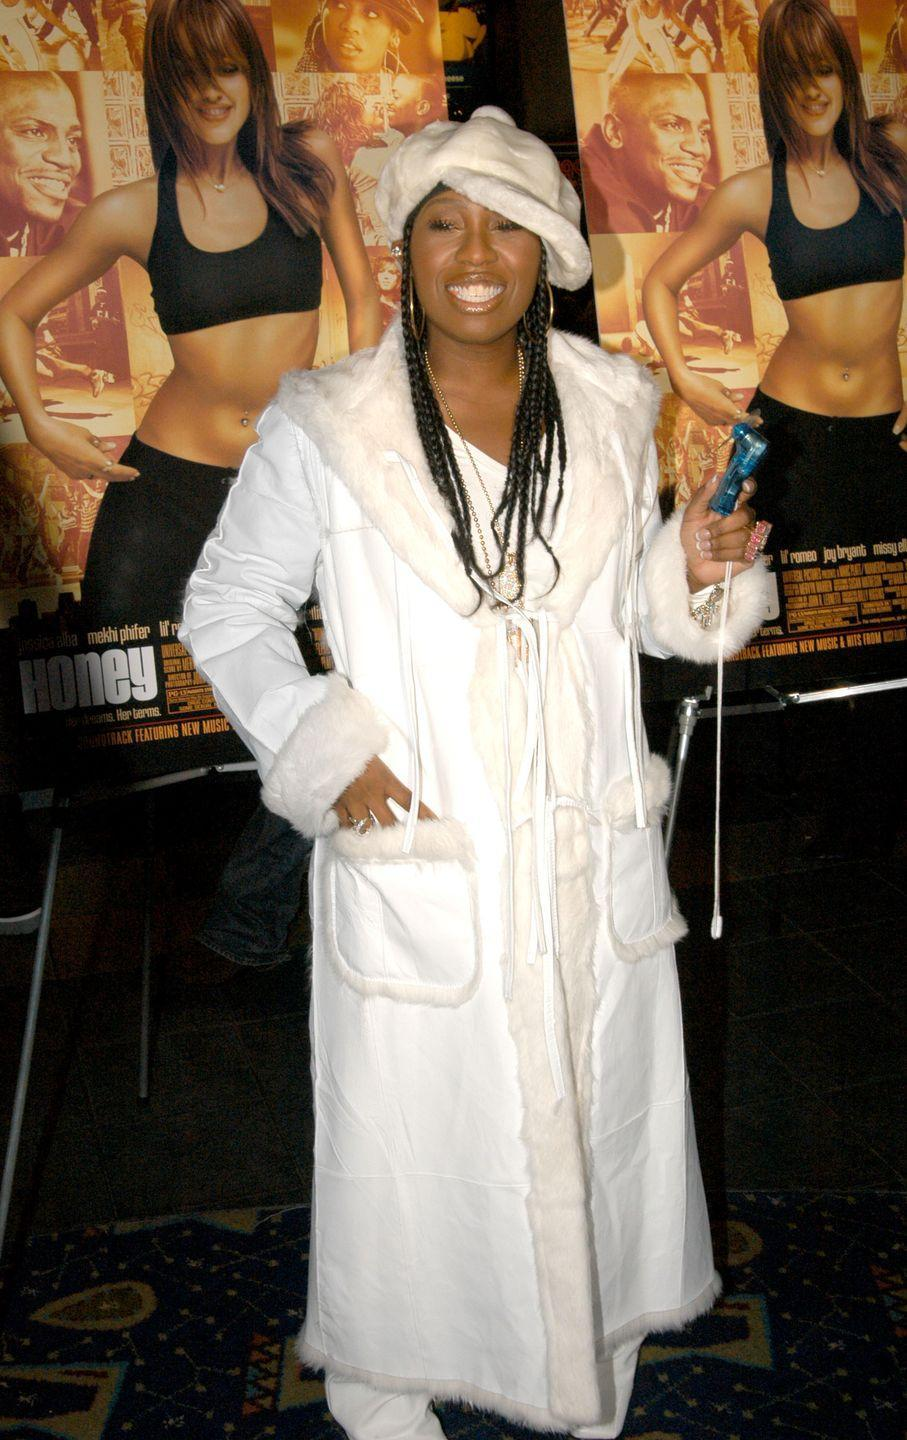 <p>Not only did Missy wear white after Labor Day to the November premiere of <em>Honey</em>, she wore all the white she could find, including a floor-length coat and a fuzzy, oversize newsboy cap.</p>